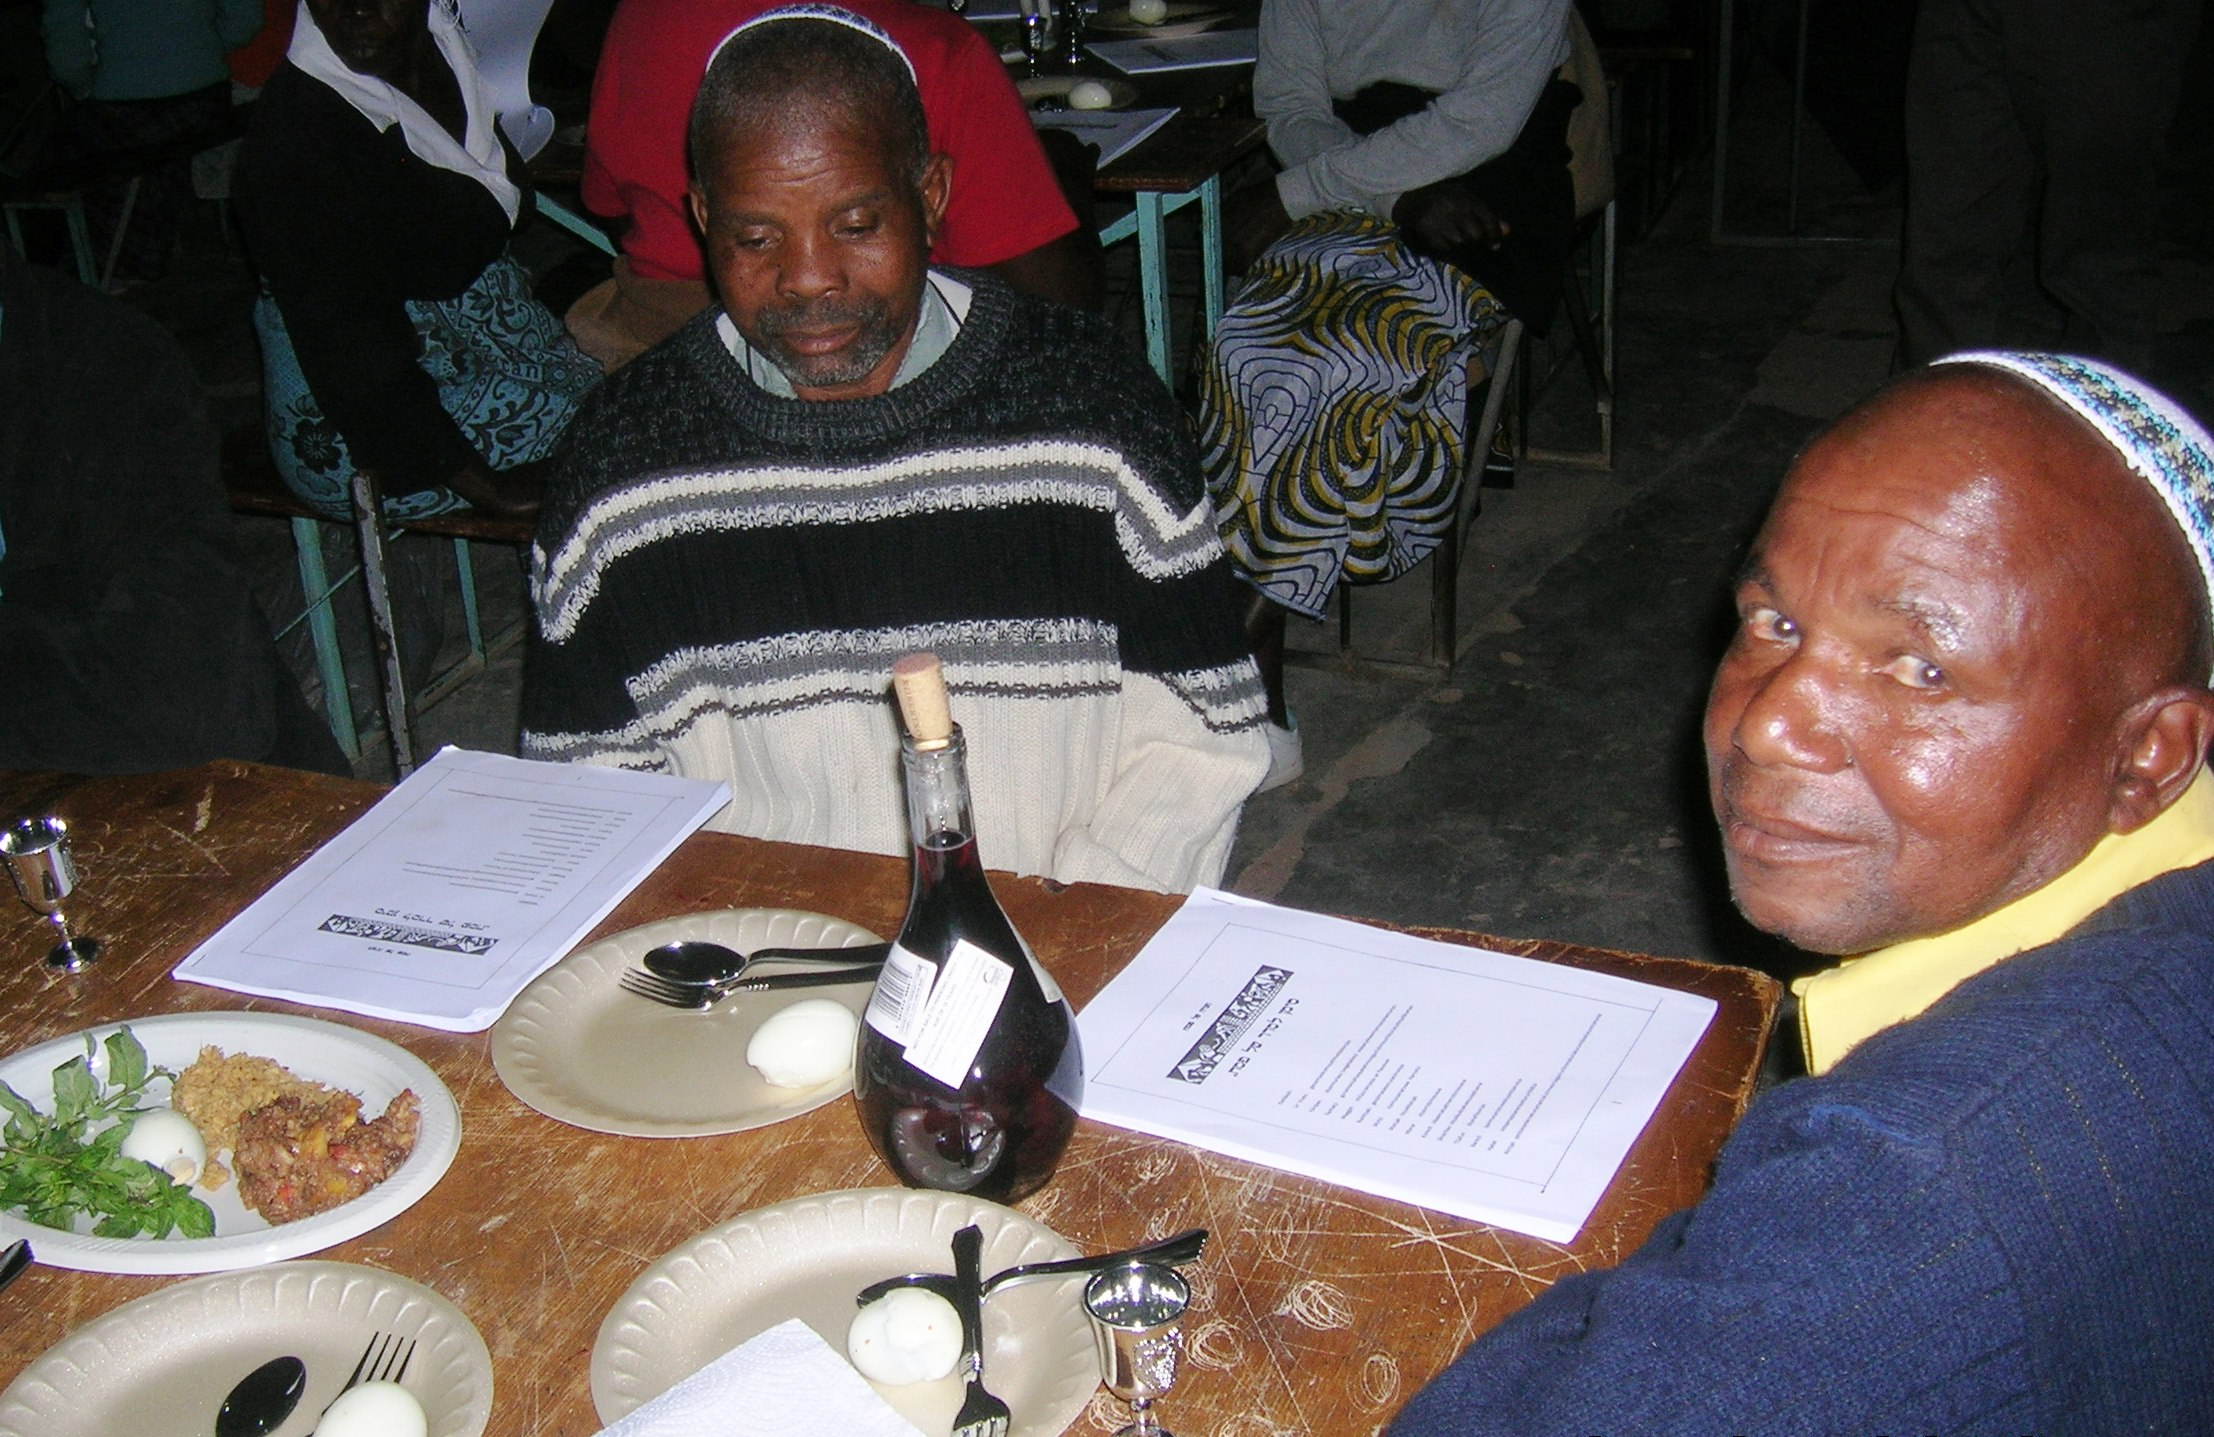 Passover Seder in Mapakomhere, Zimbabwe. Photo by Sandy Leeder, 2012.